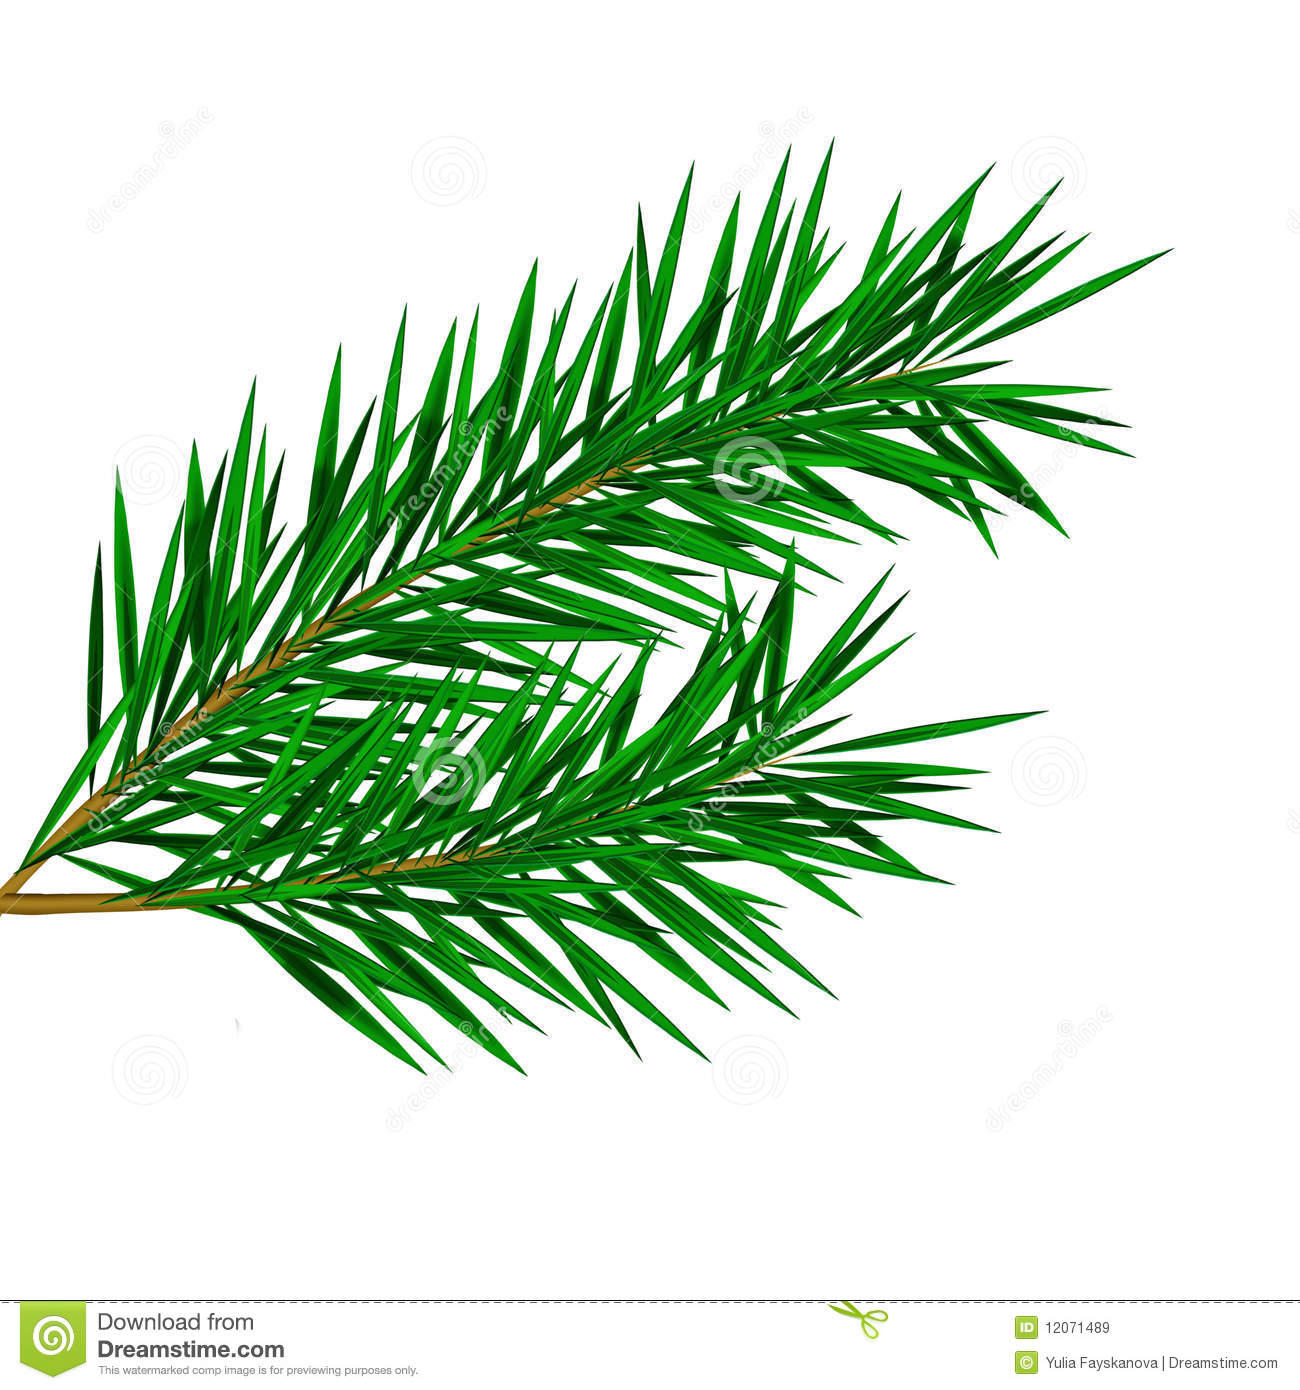 Pine straw clipart #4